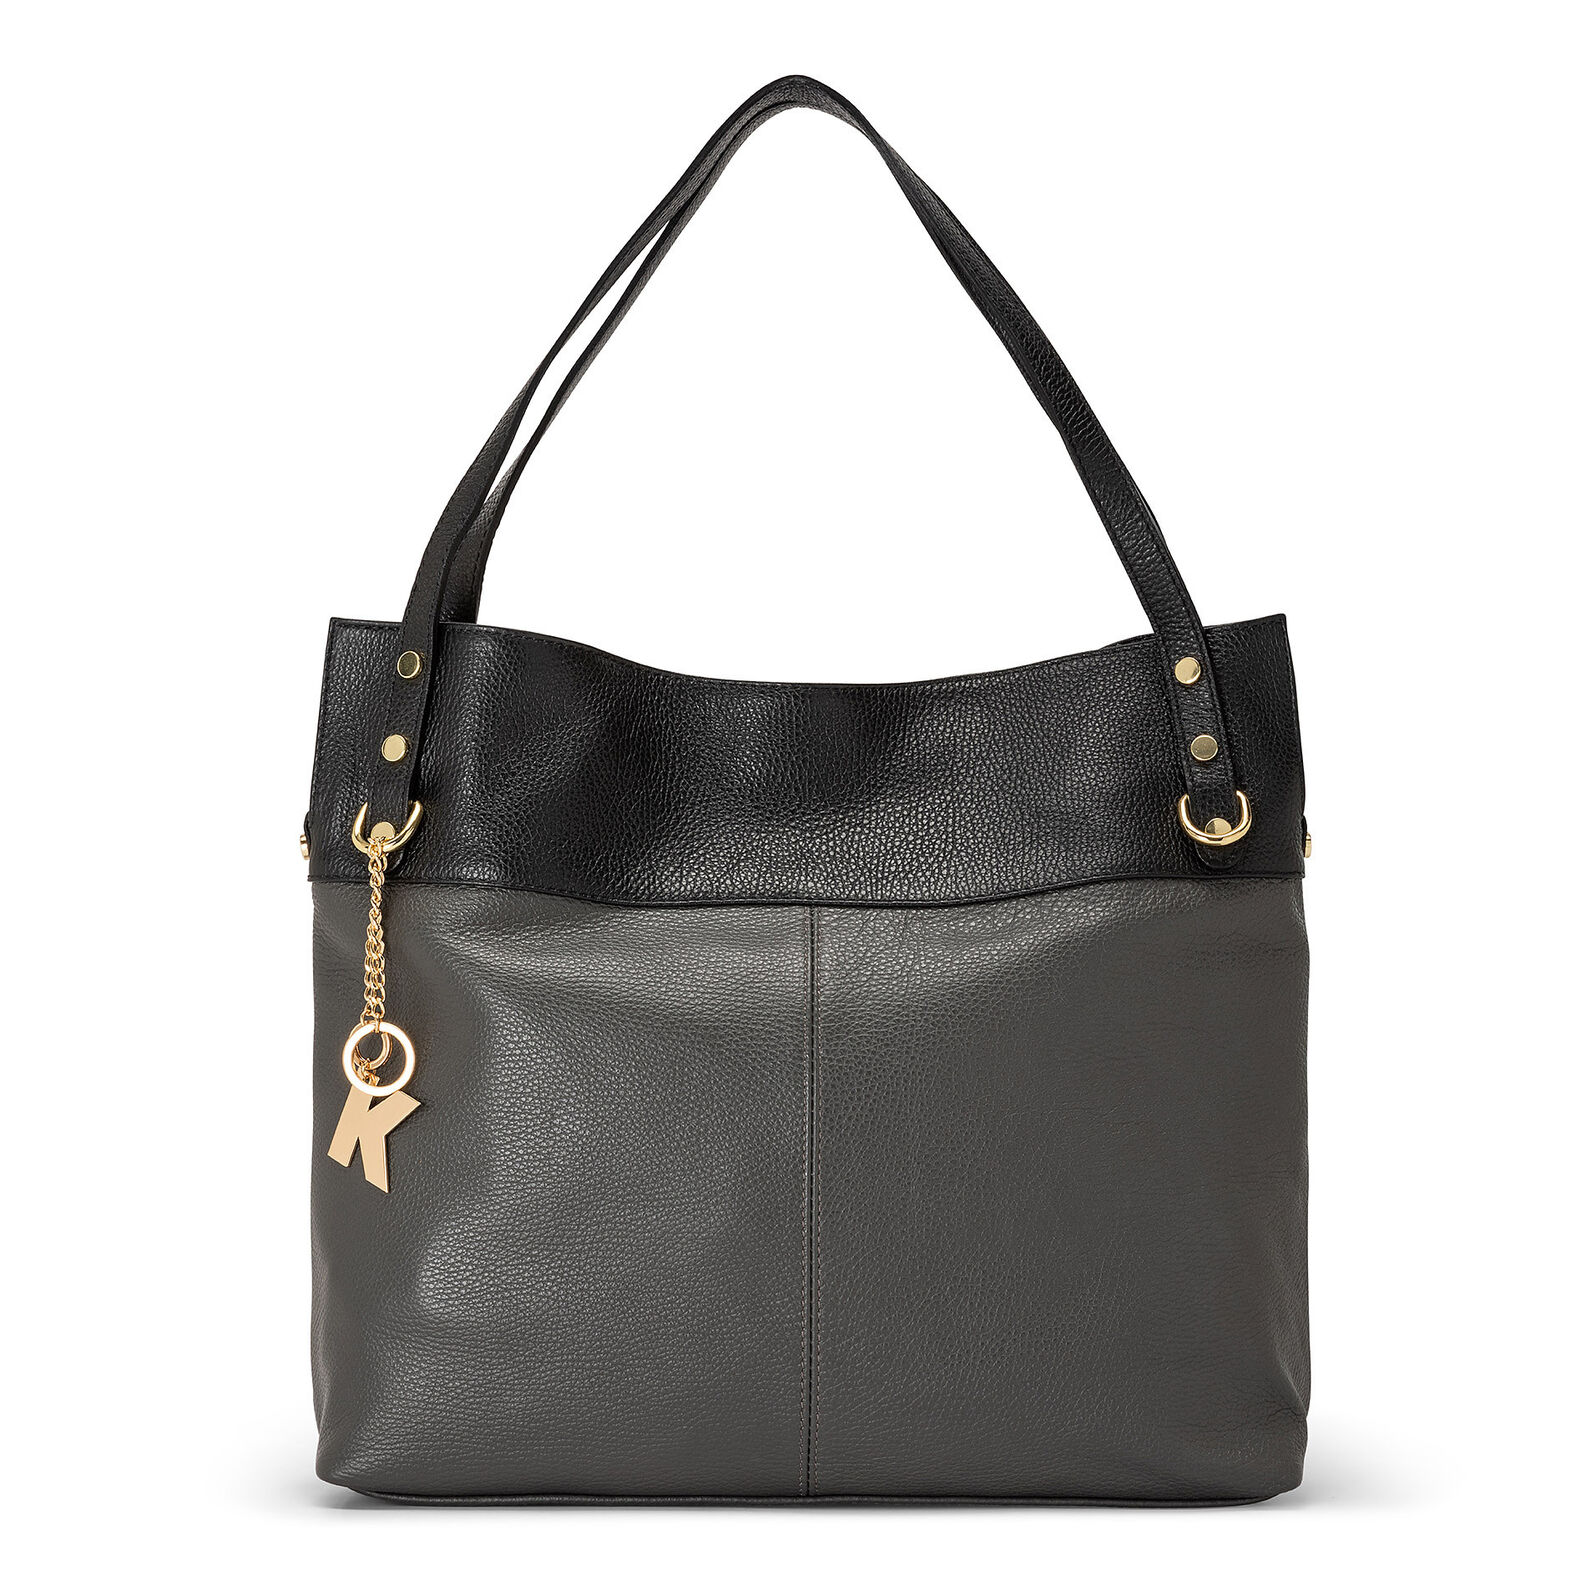 Koan Shopping bag in genuine leather